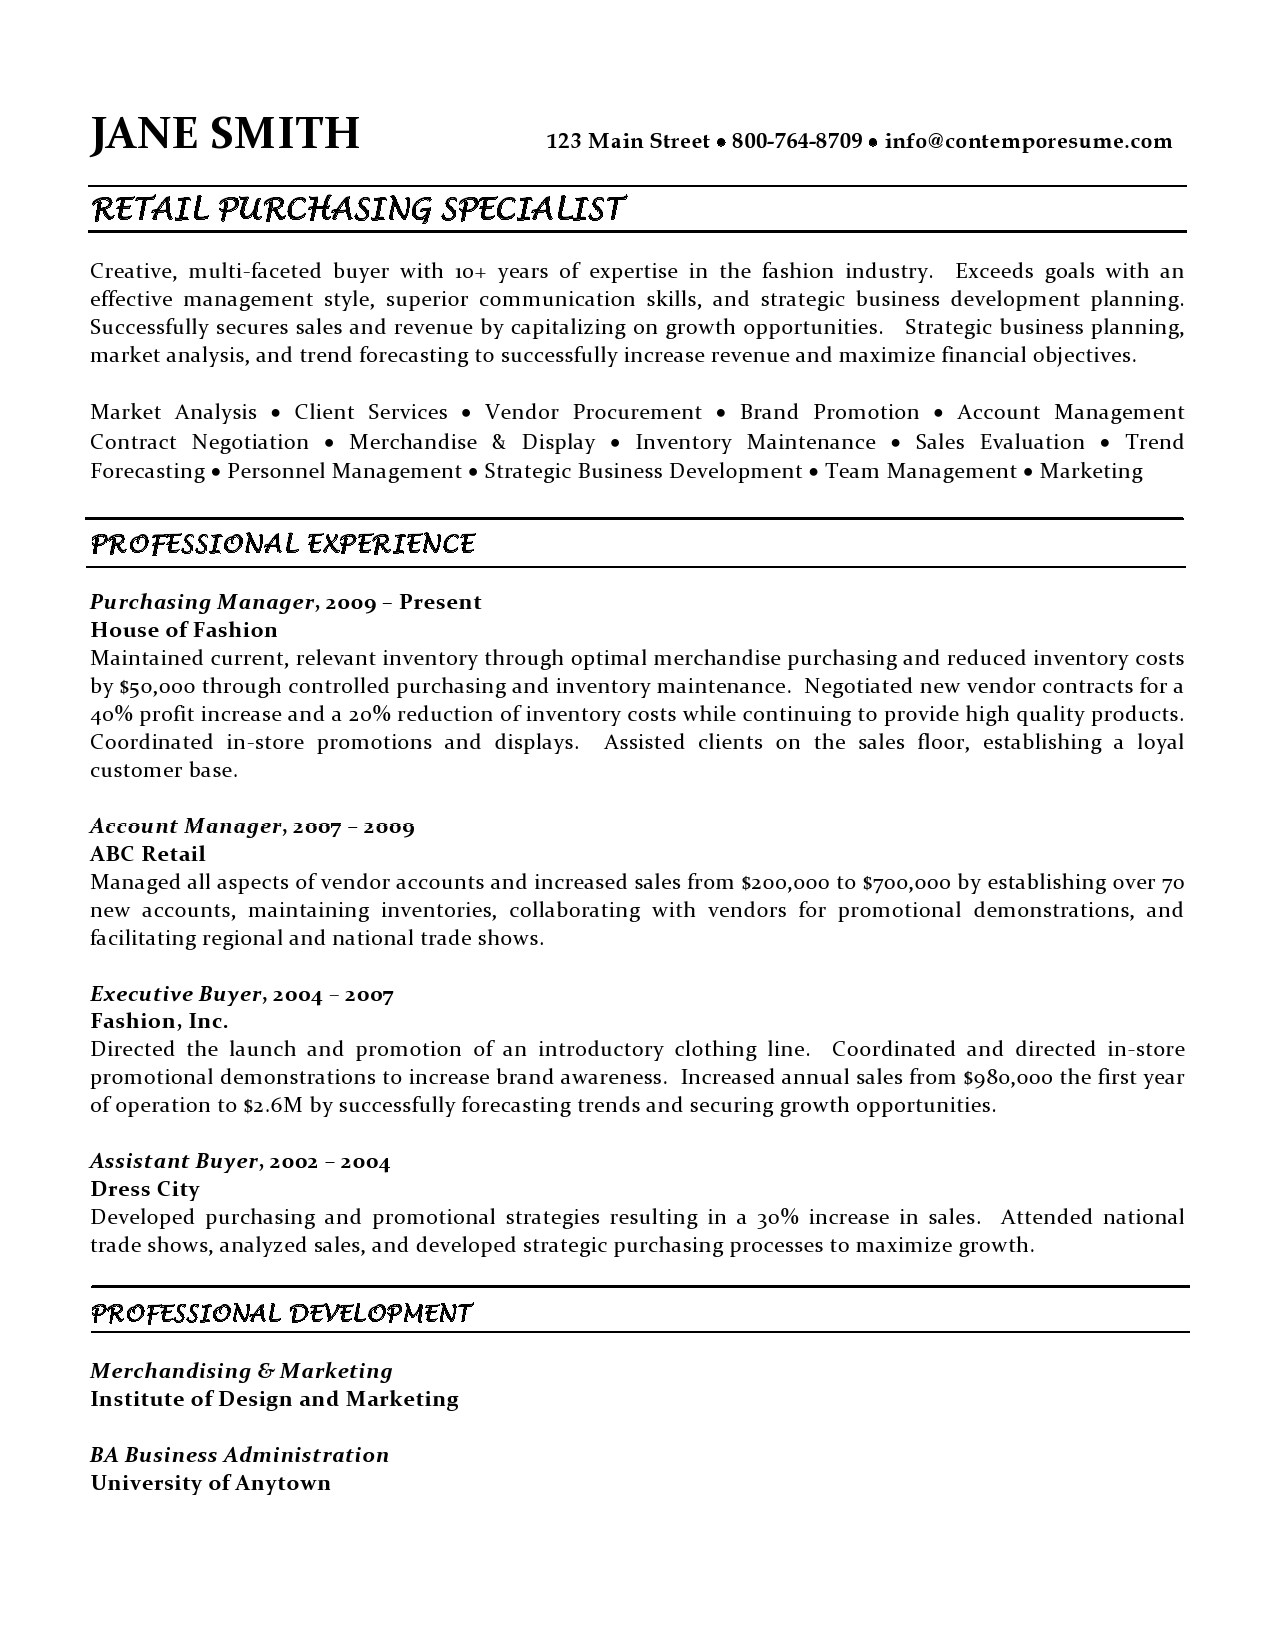 Resume Format For Purchase Manager Retail Buyer Resume Objective Examples Ielts Academic